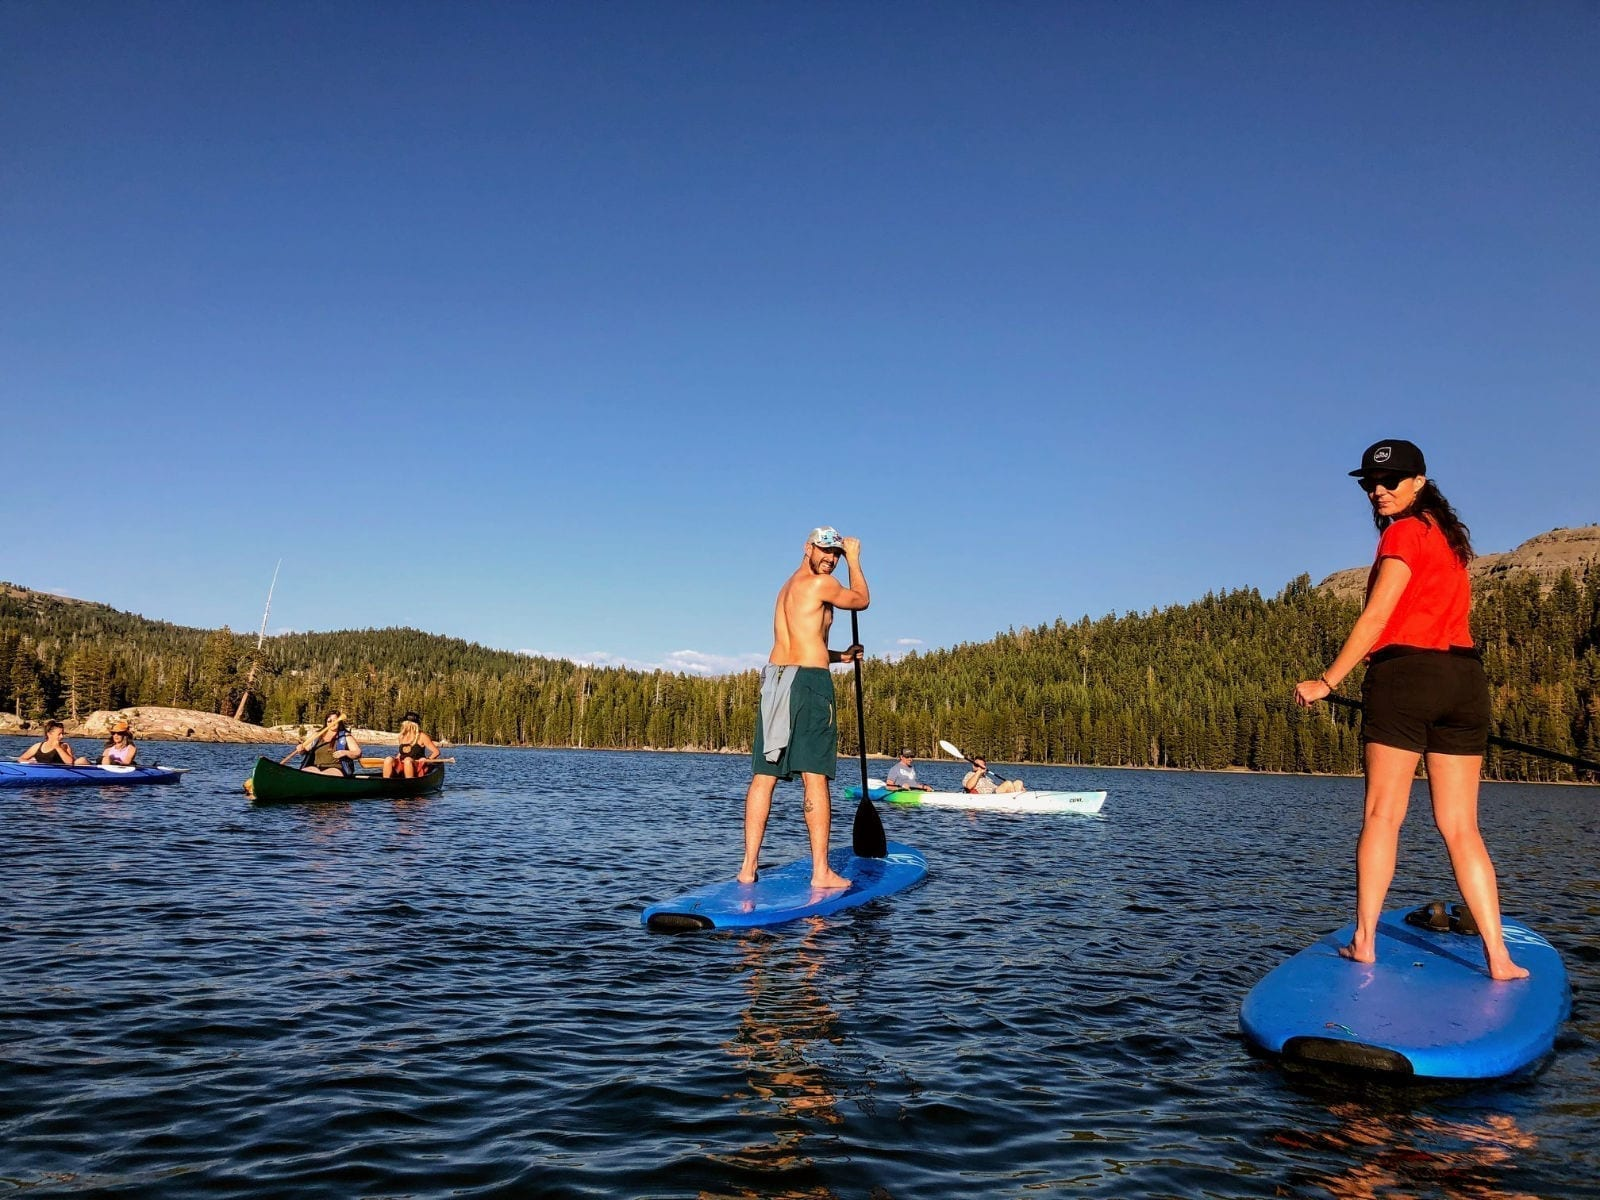 Man and woman on stand up paddle boards on the water with people in canoes and kayaks in the background